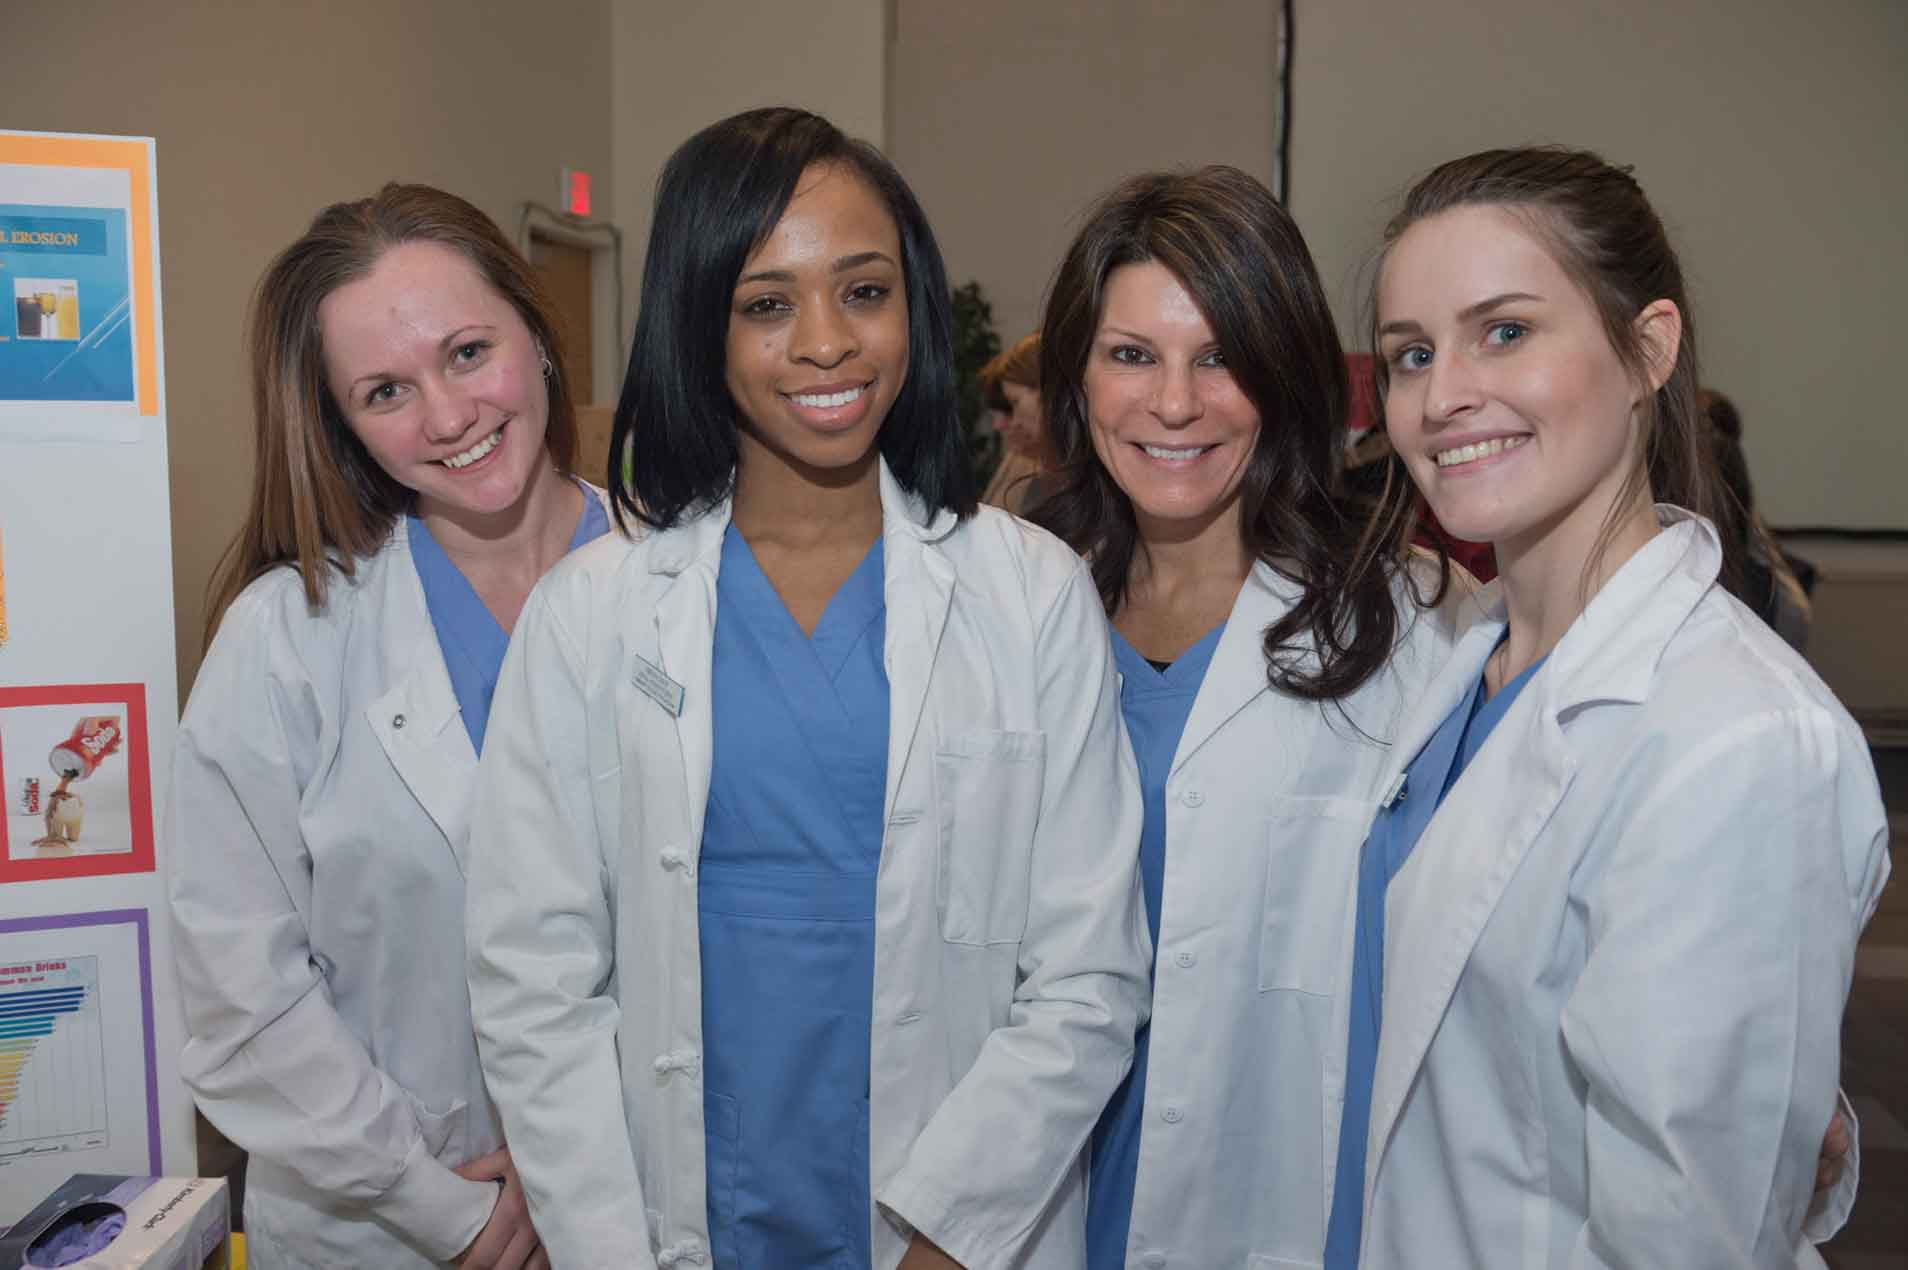 Four women in blue scrubs and white medical coats.